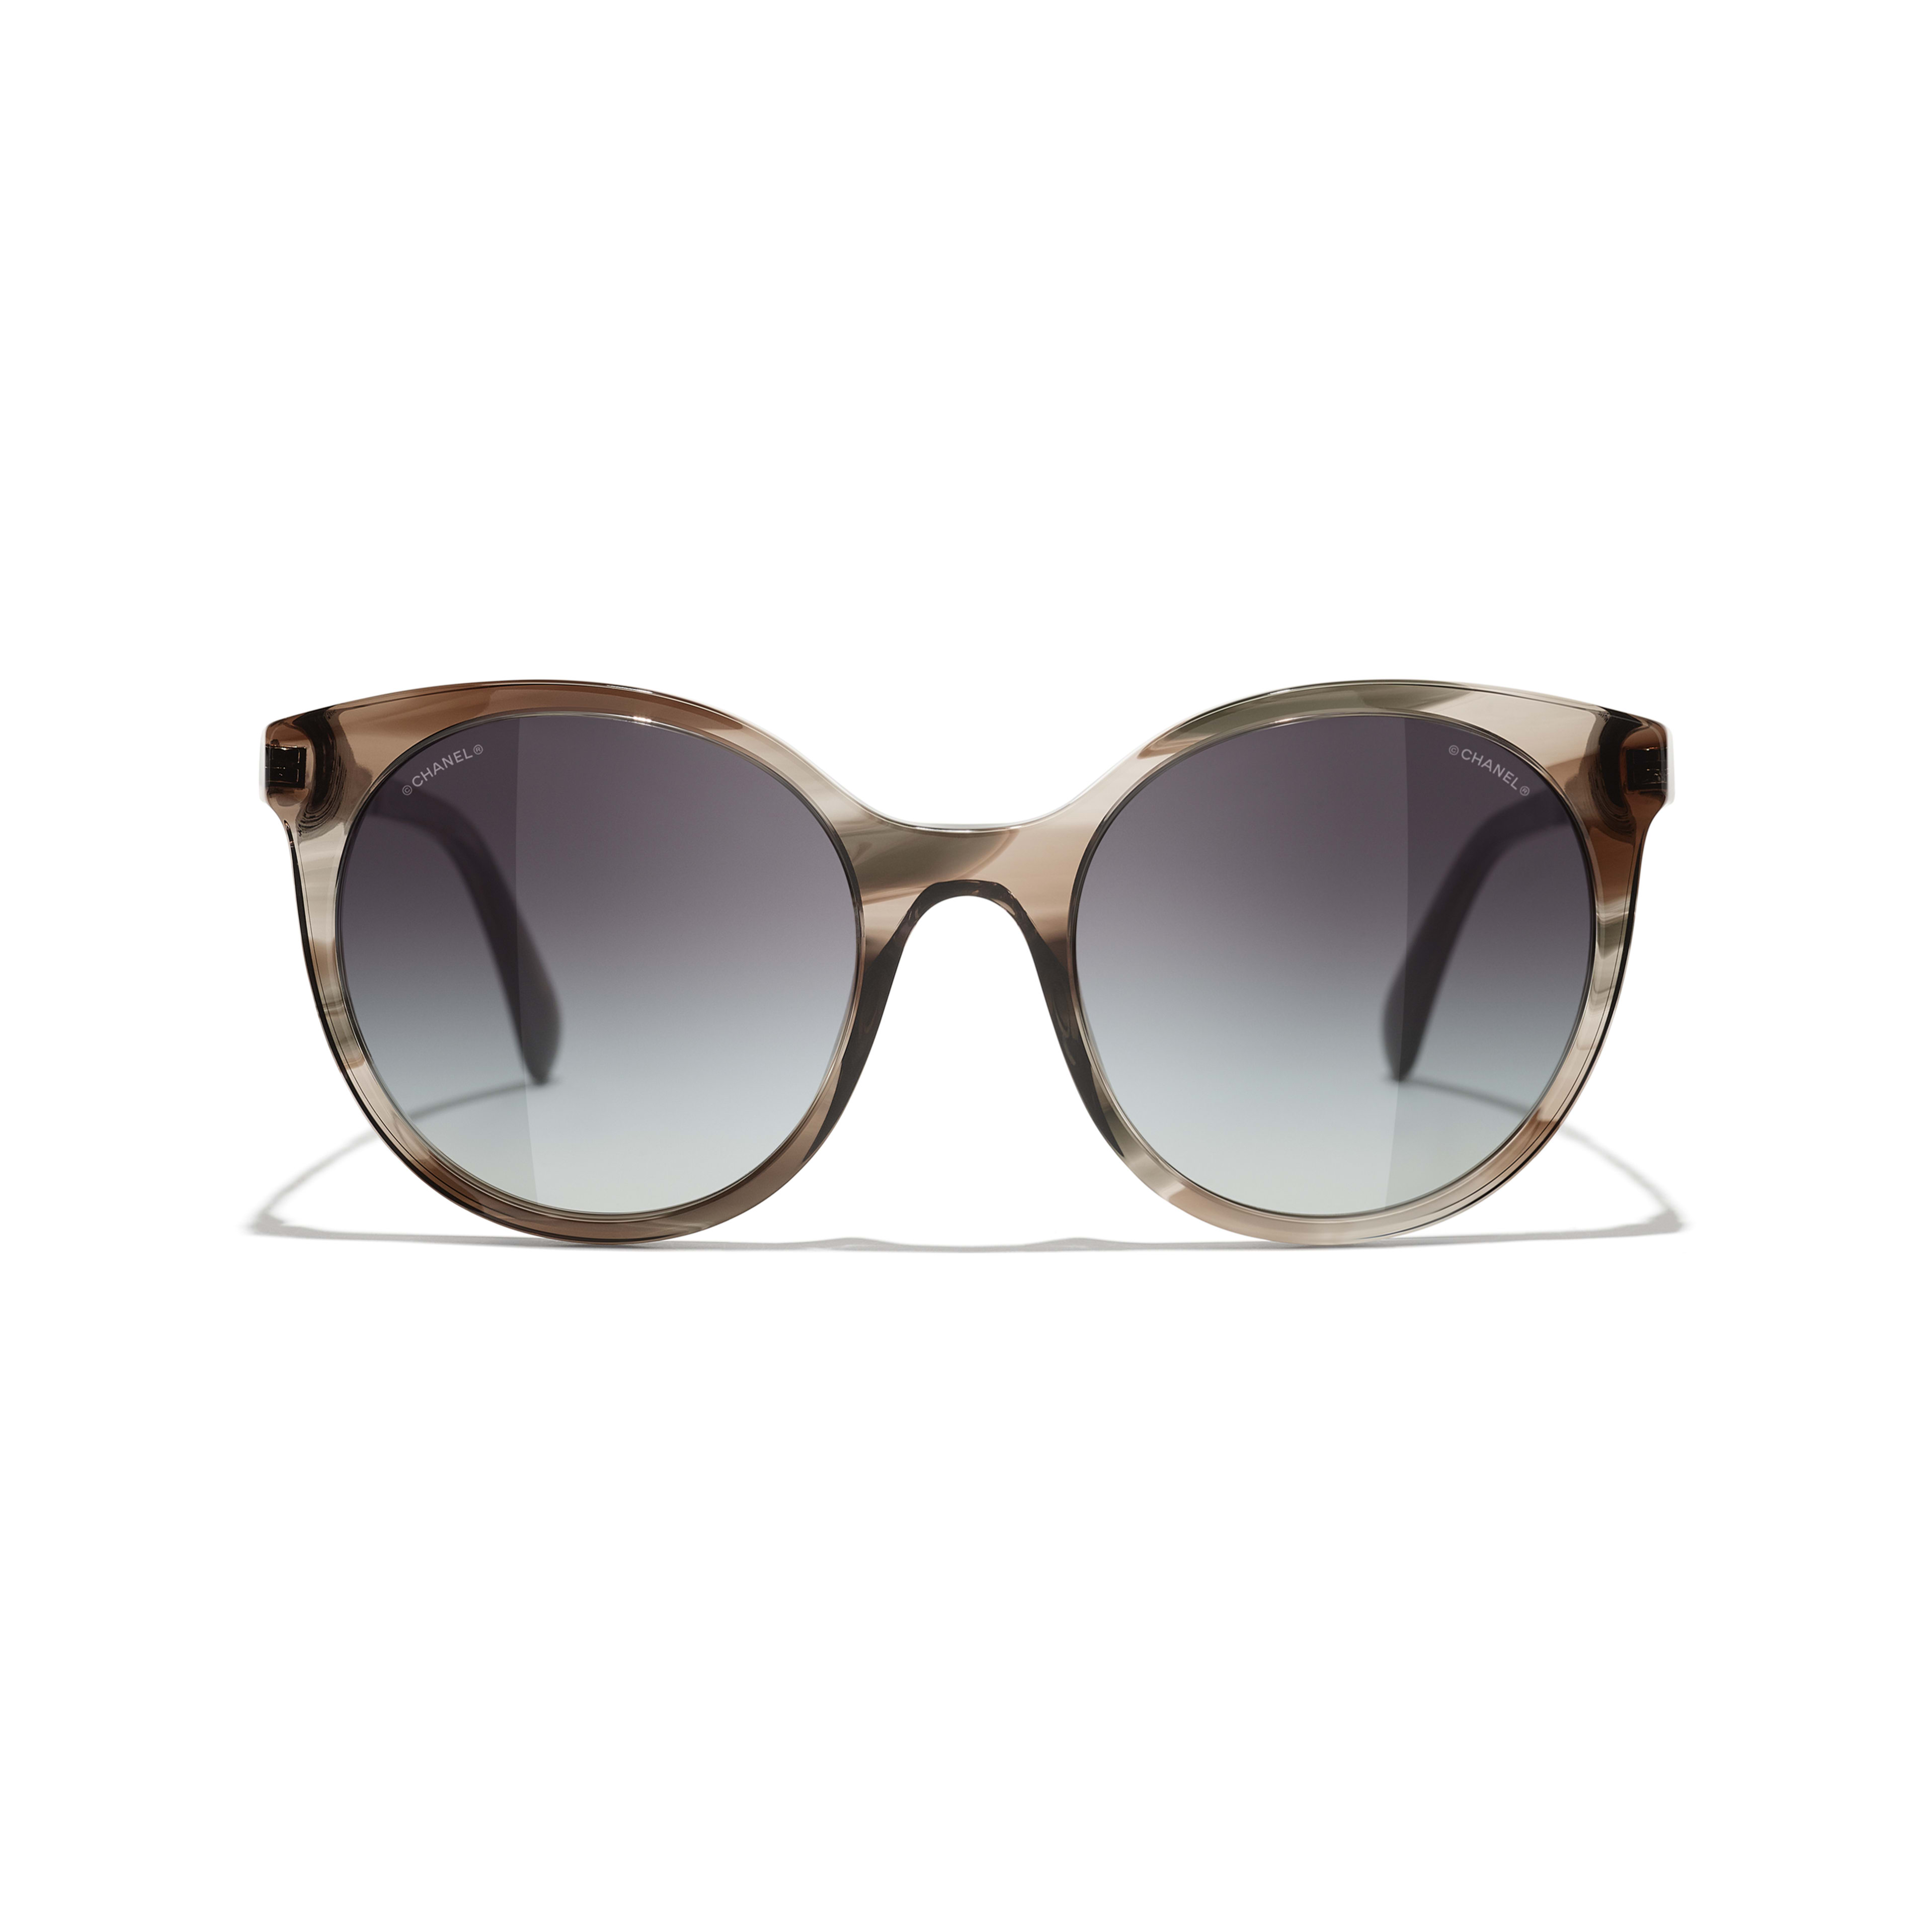 Pantos Sunglasses - Grey - Acetate & Metal - CHANEL - Alternative view - see standard sized version